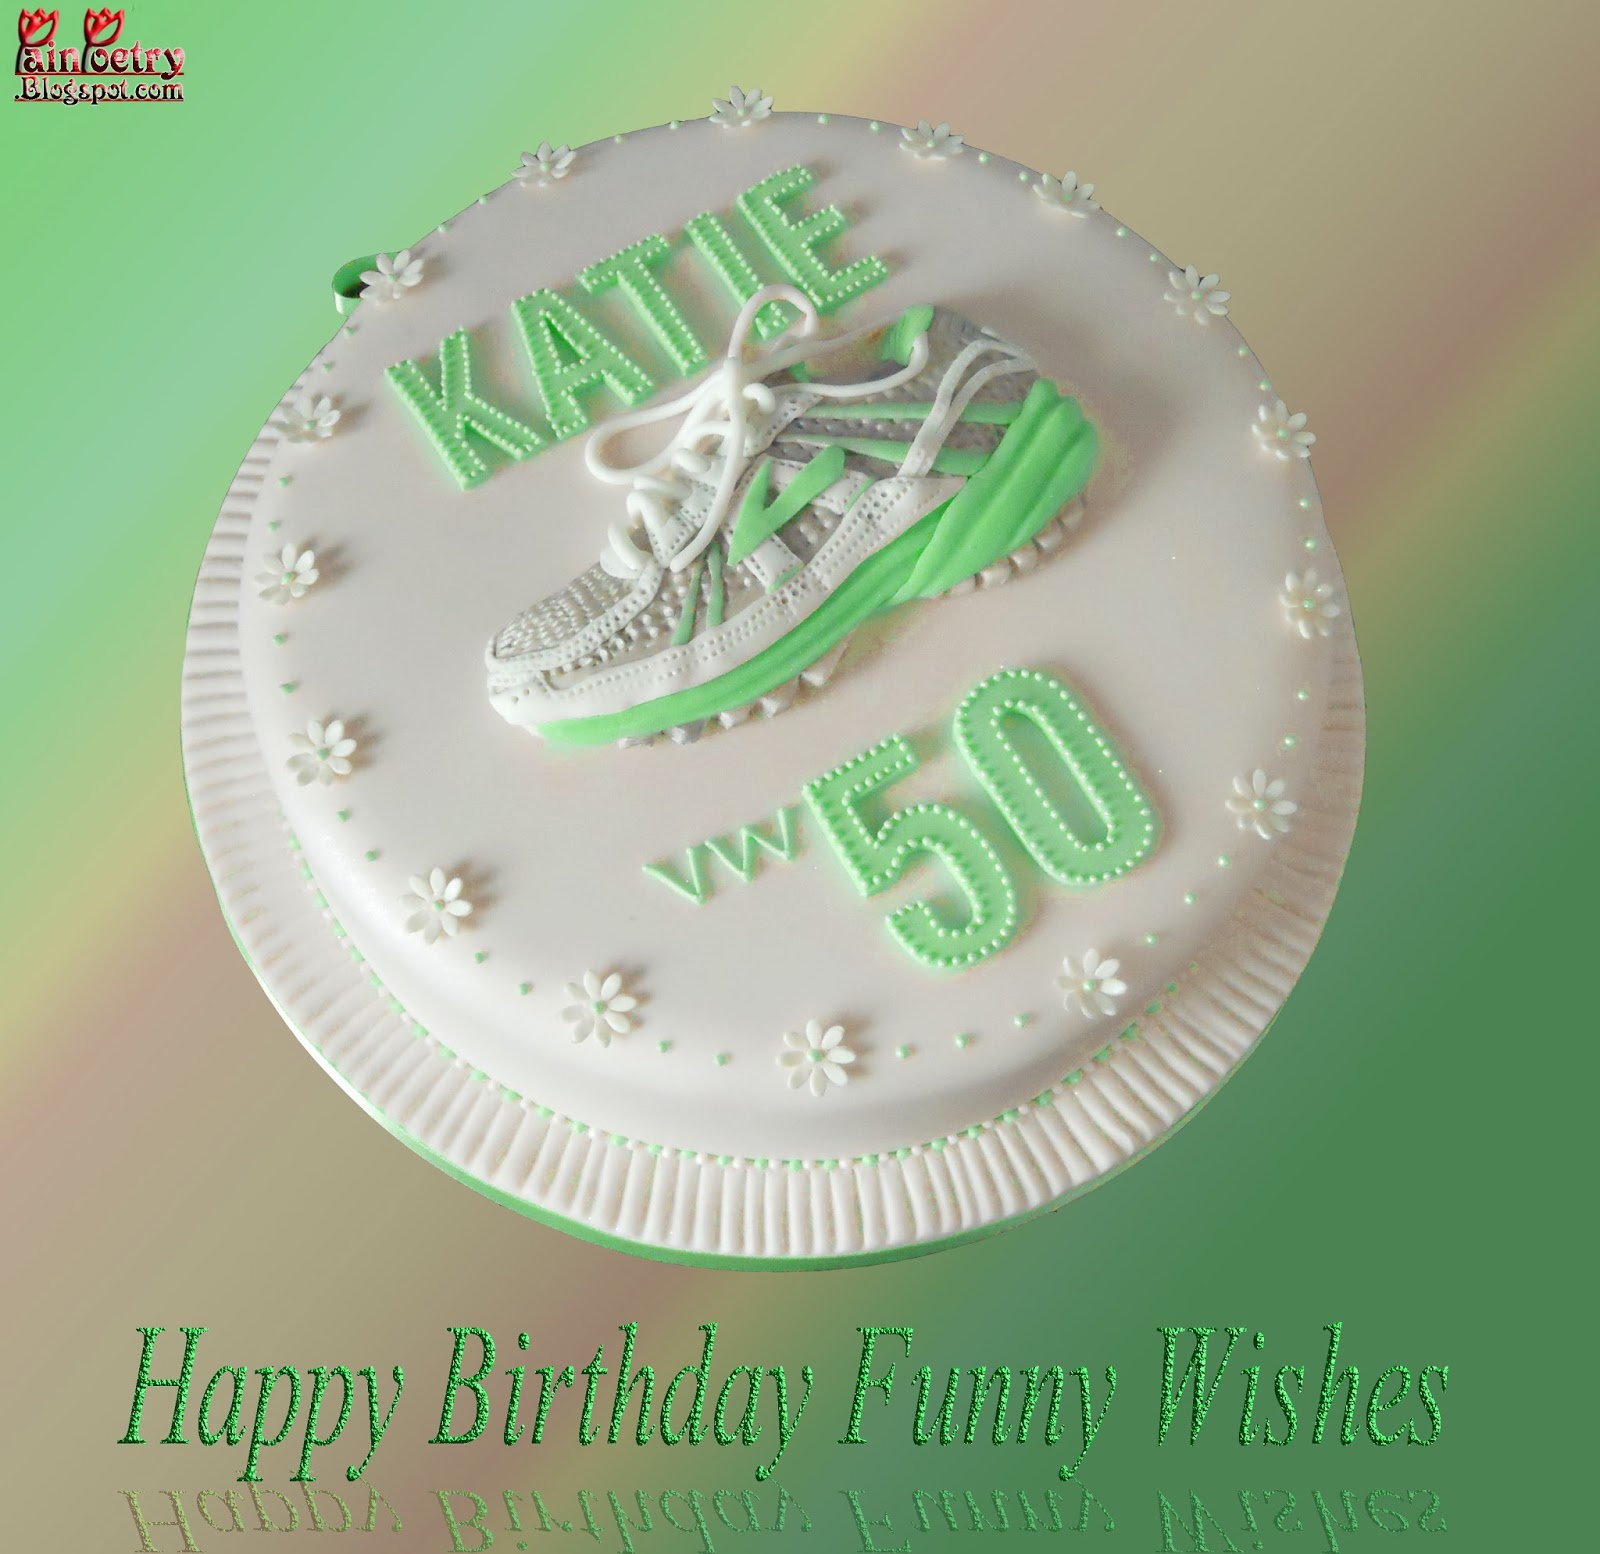 Happy-Birthday-Wishes-Cake-Walpaper-Image-HD-Wide